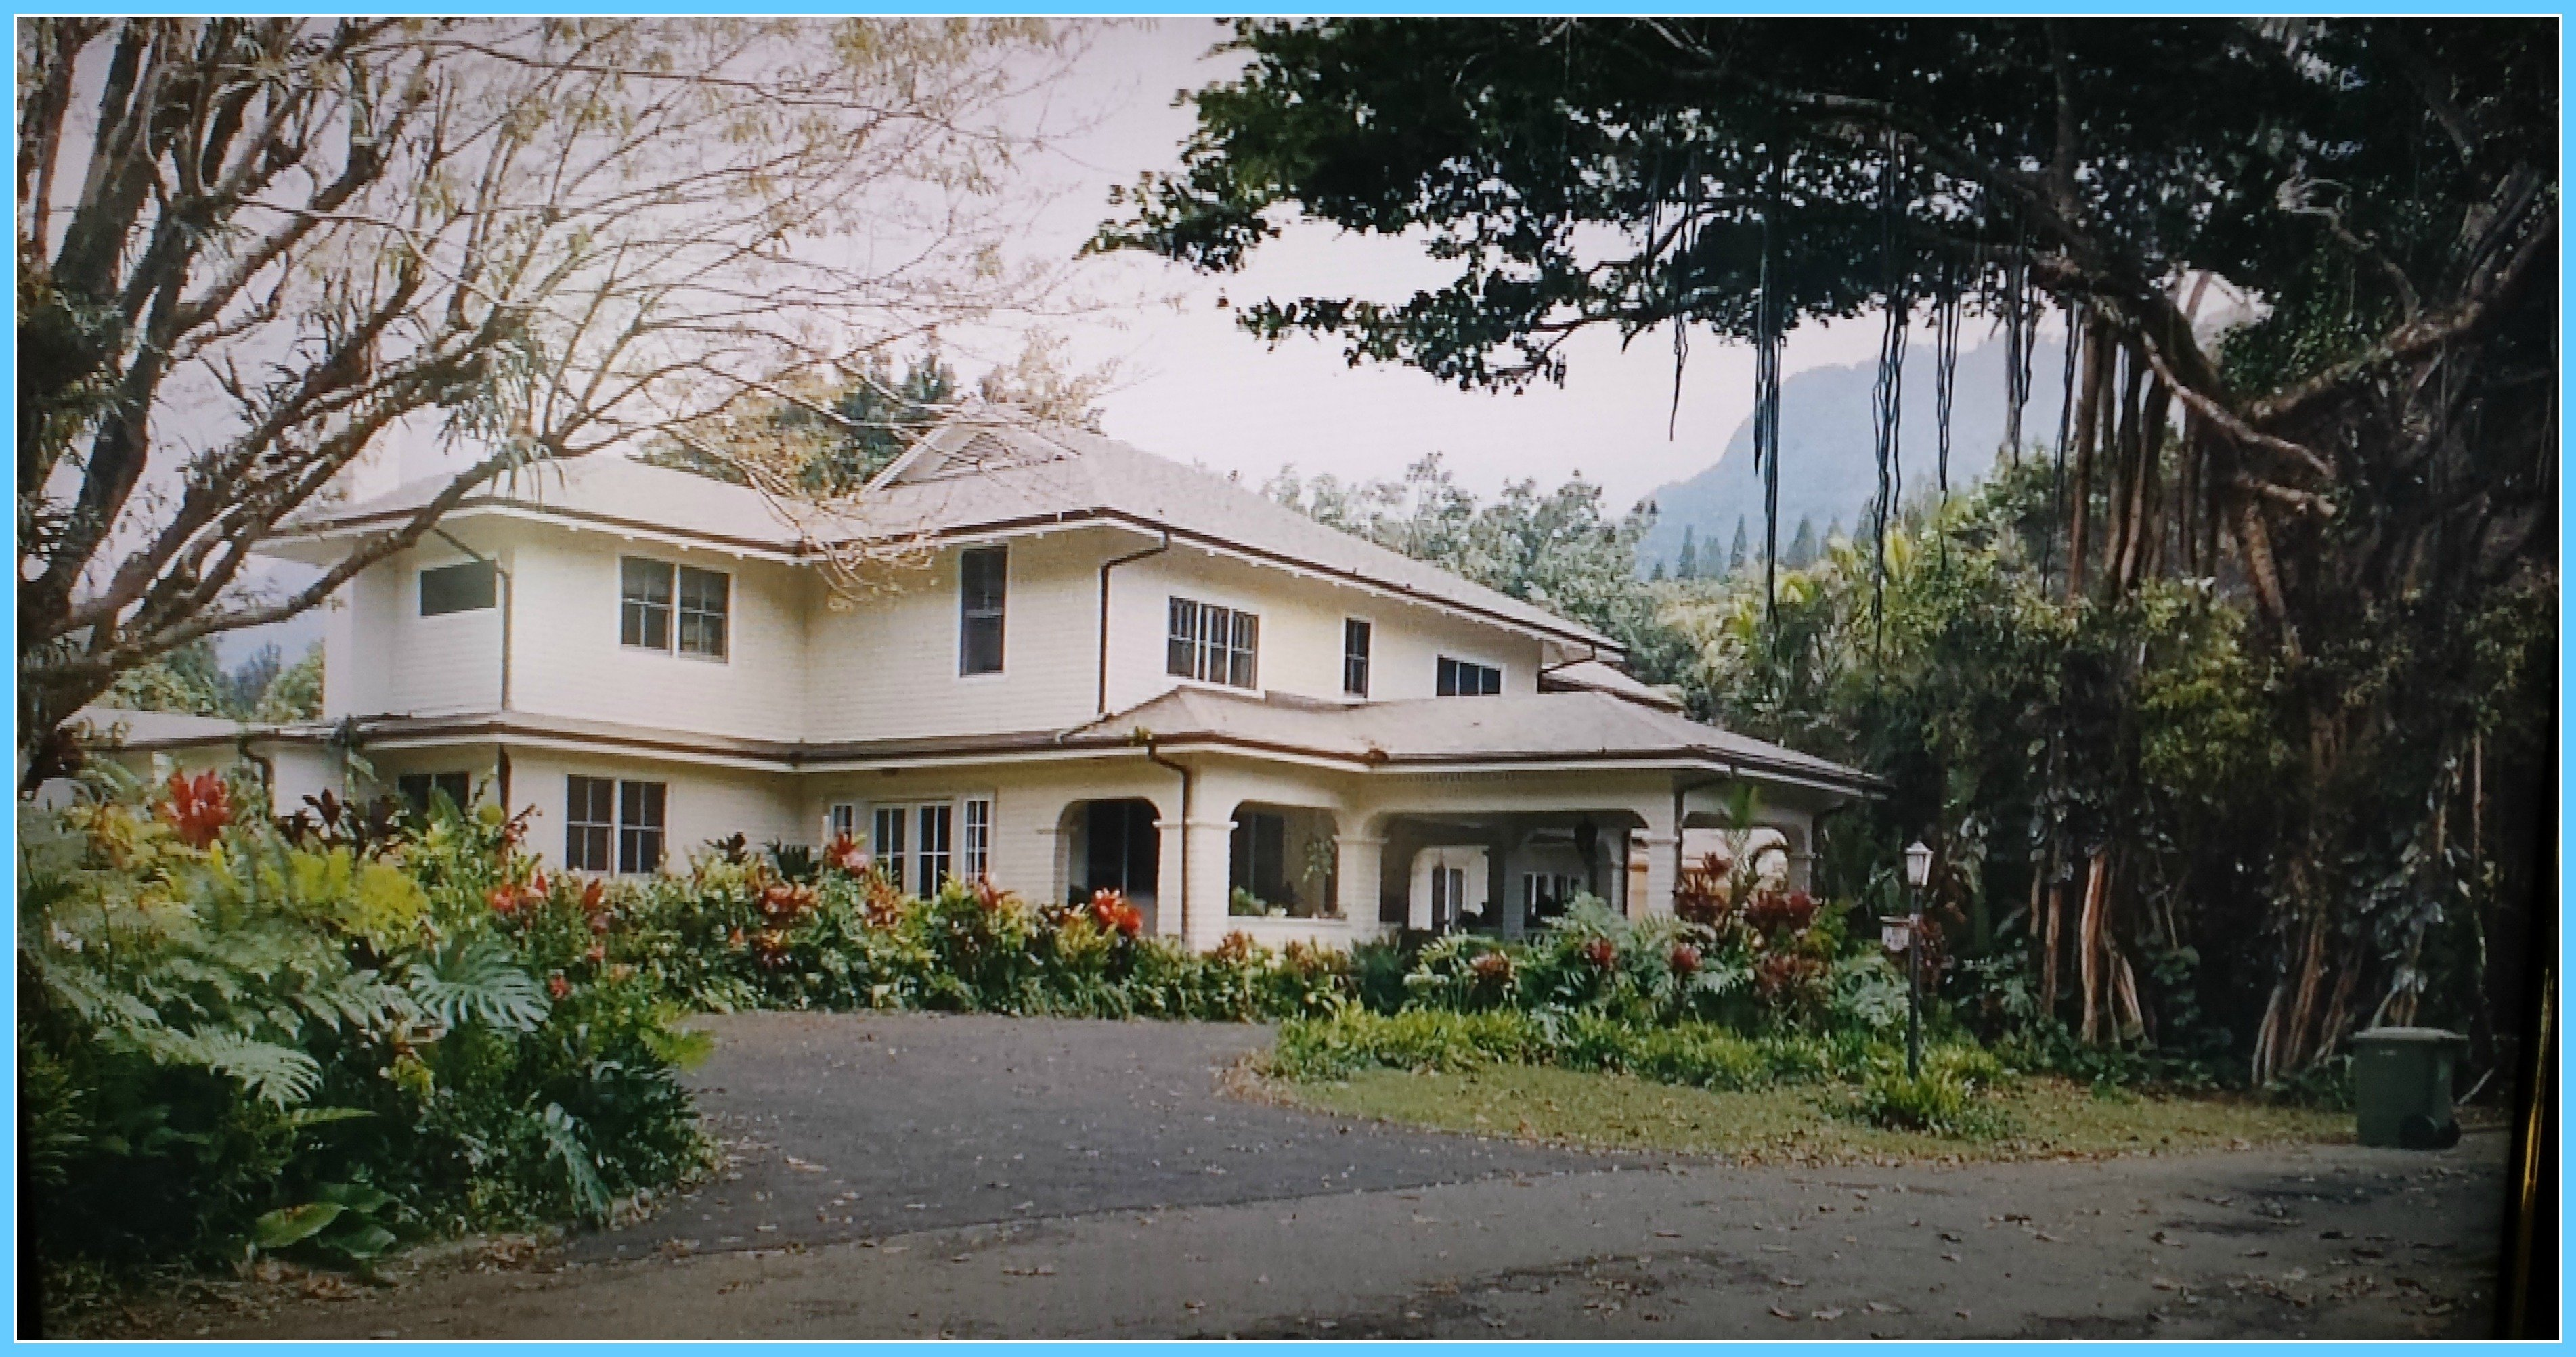 The Descendants Movie Houses Filming Locations Photos